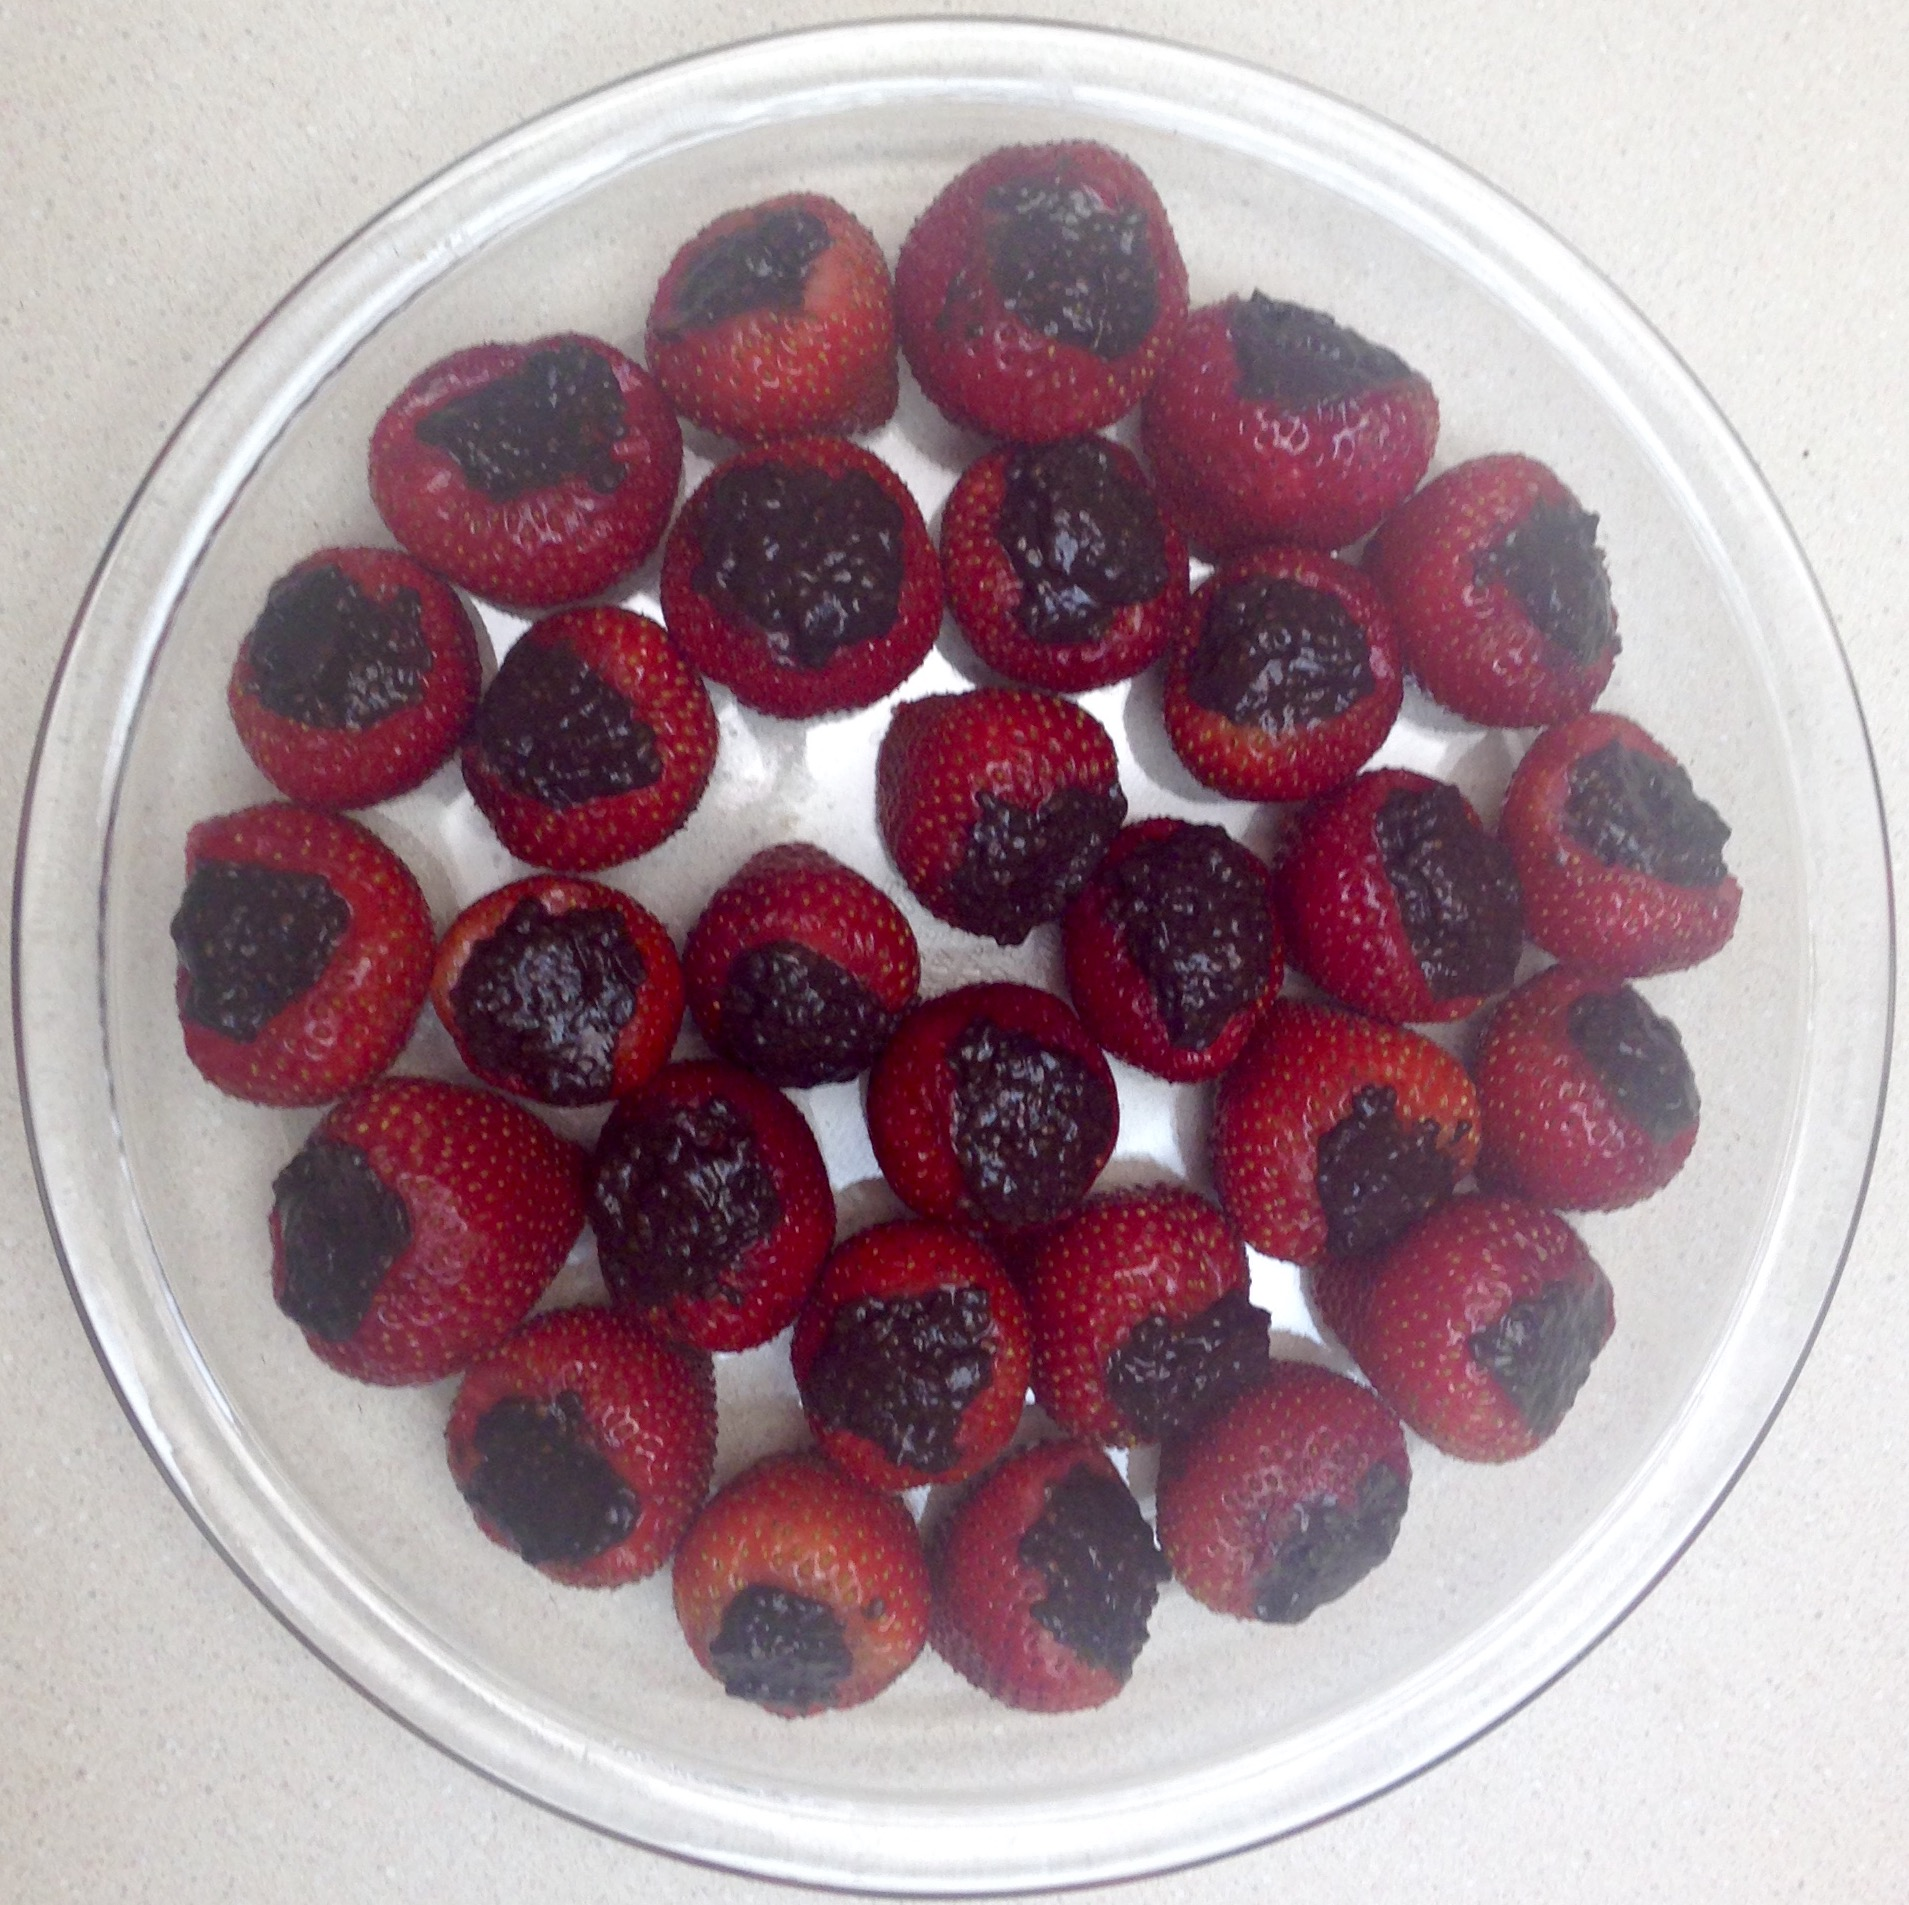 chocolatechiastrawberries